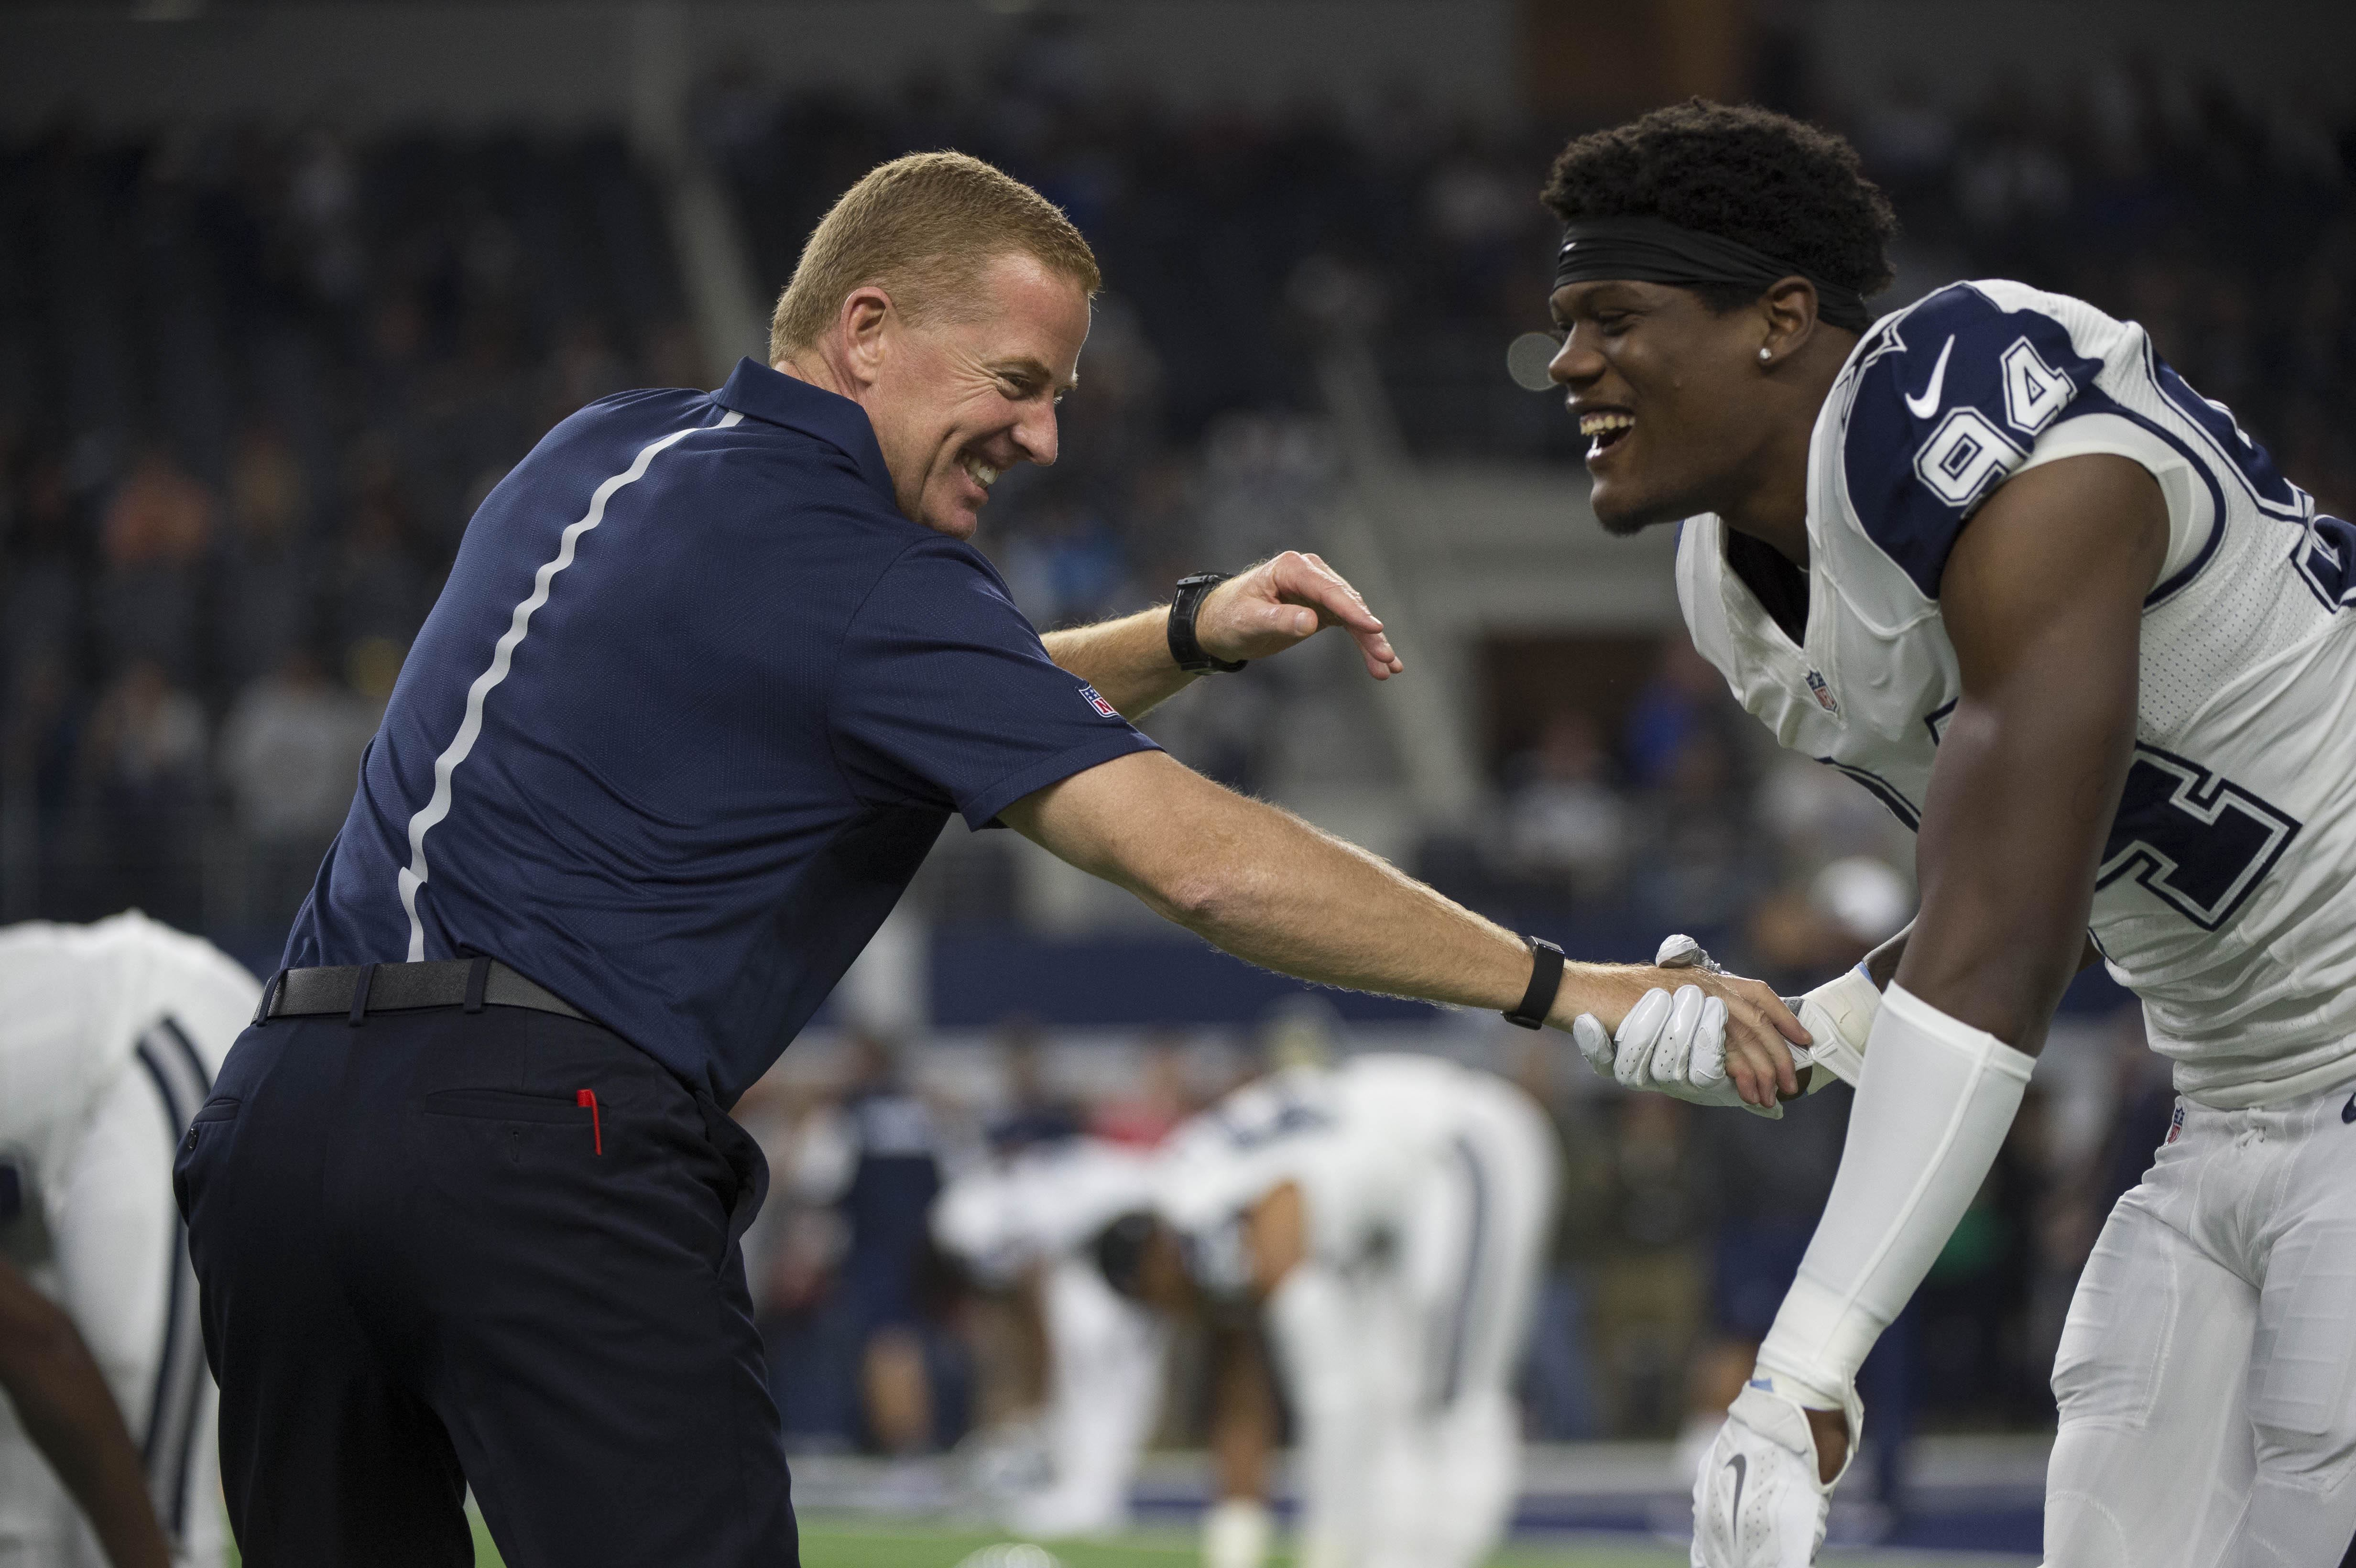 Sean-martin_dallas-cowboys_breaking-down-an-outsiders-view-of-cowboys-training-camp